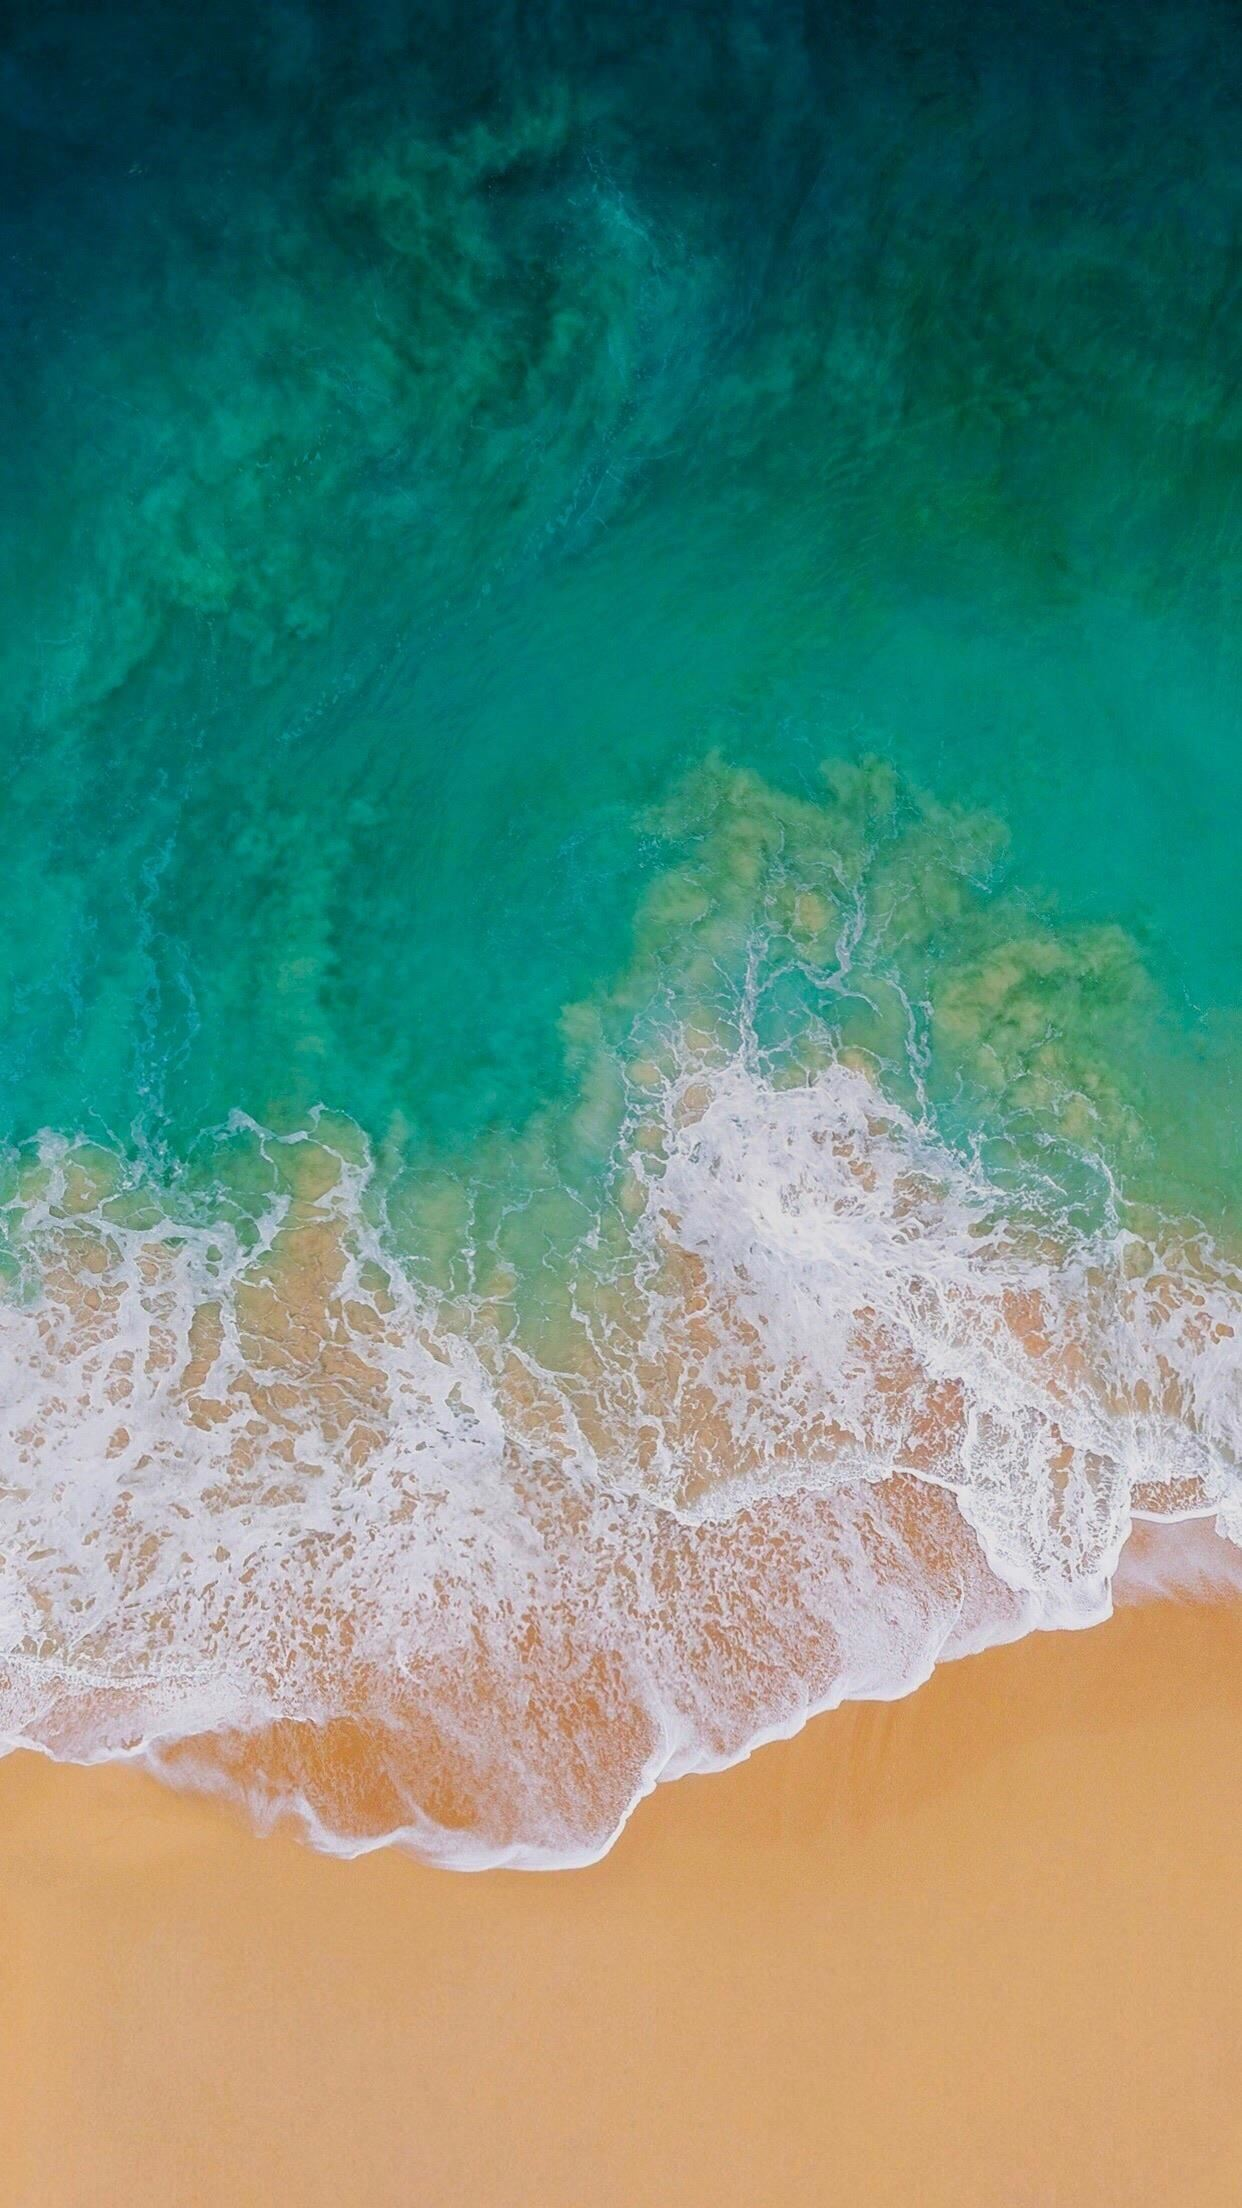 Get iOS 11's New Wallpaper on Any Phone